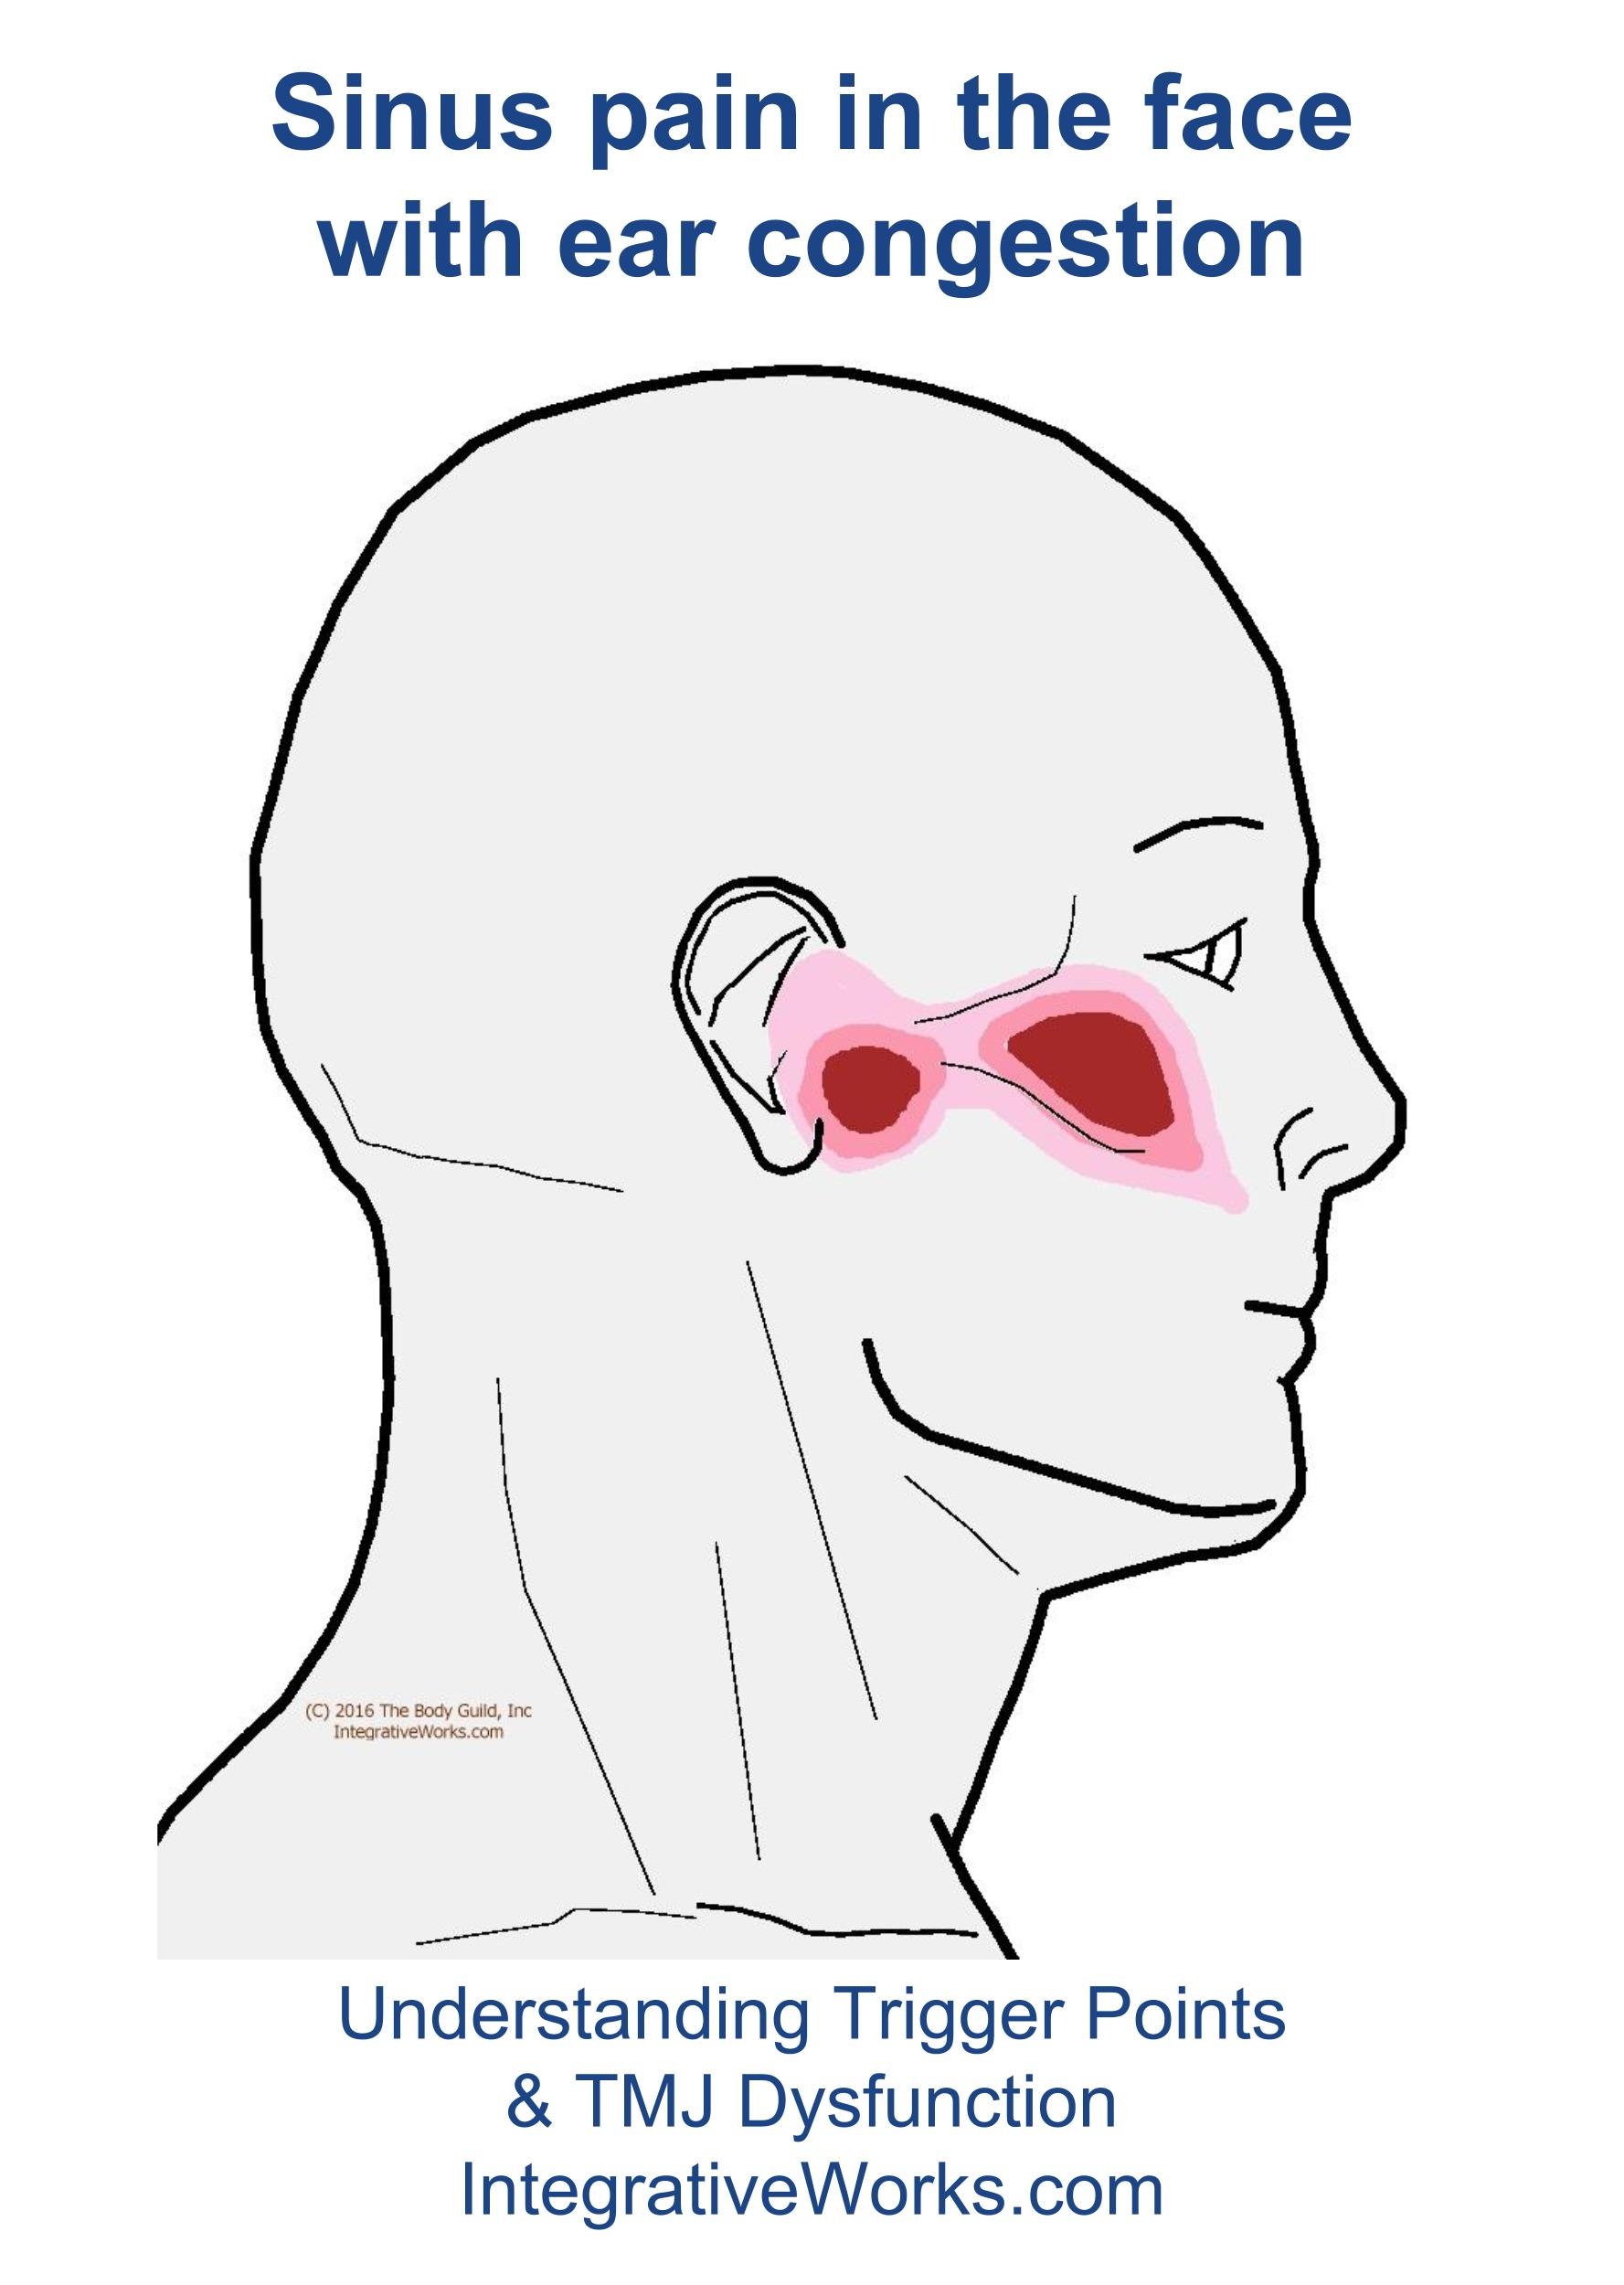 Sinus pain in the face & ear congestion | Integrative Works